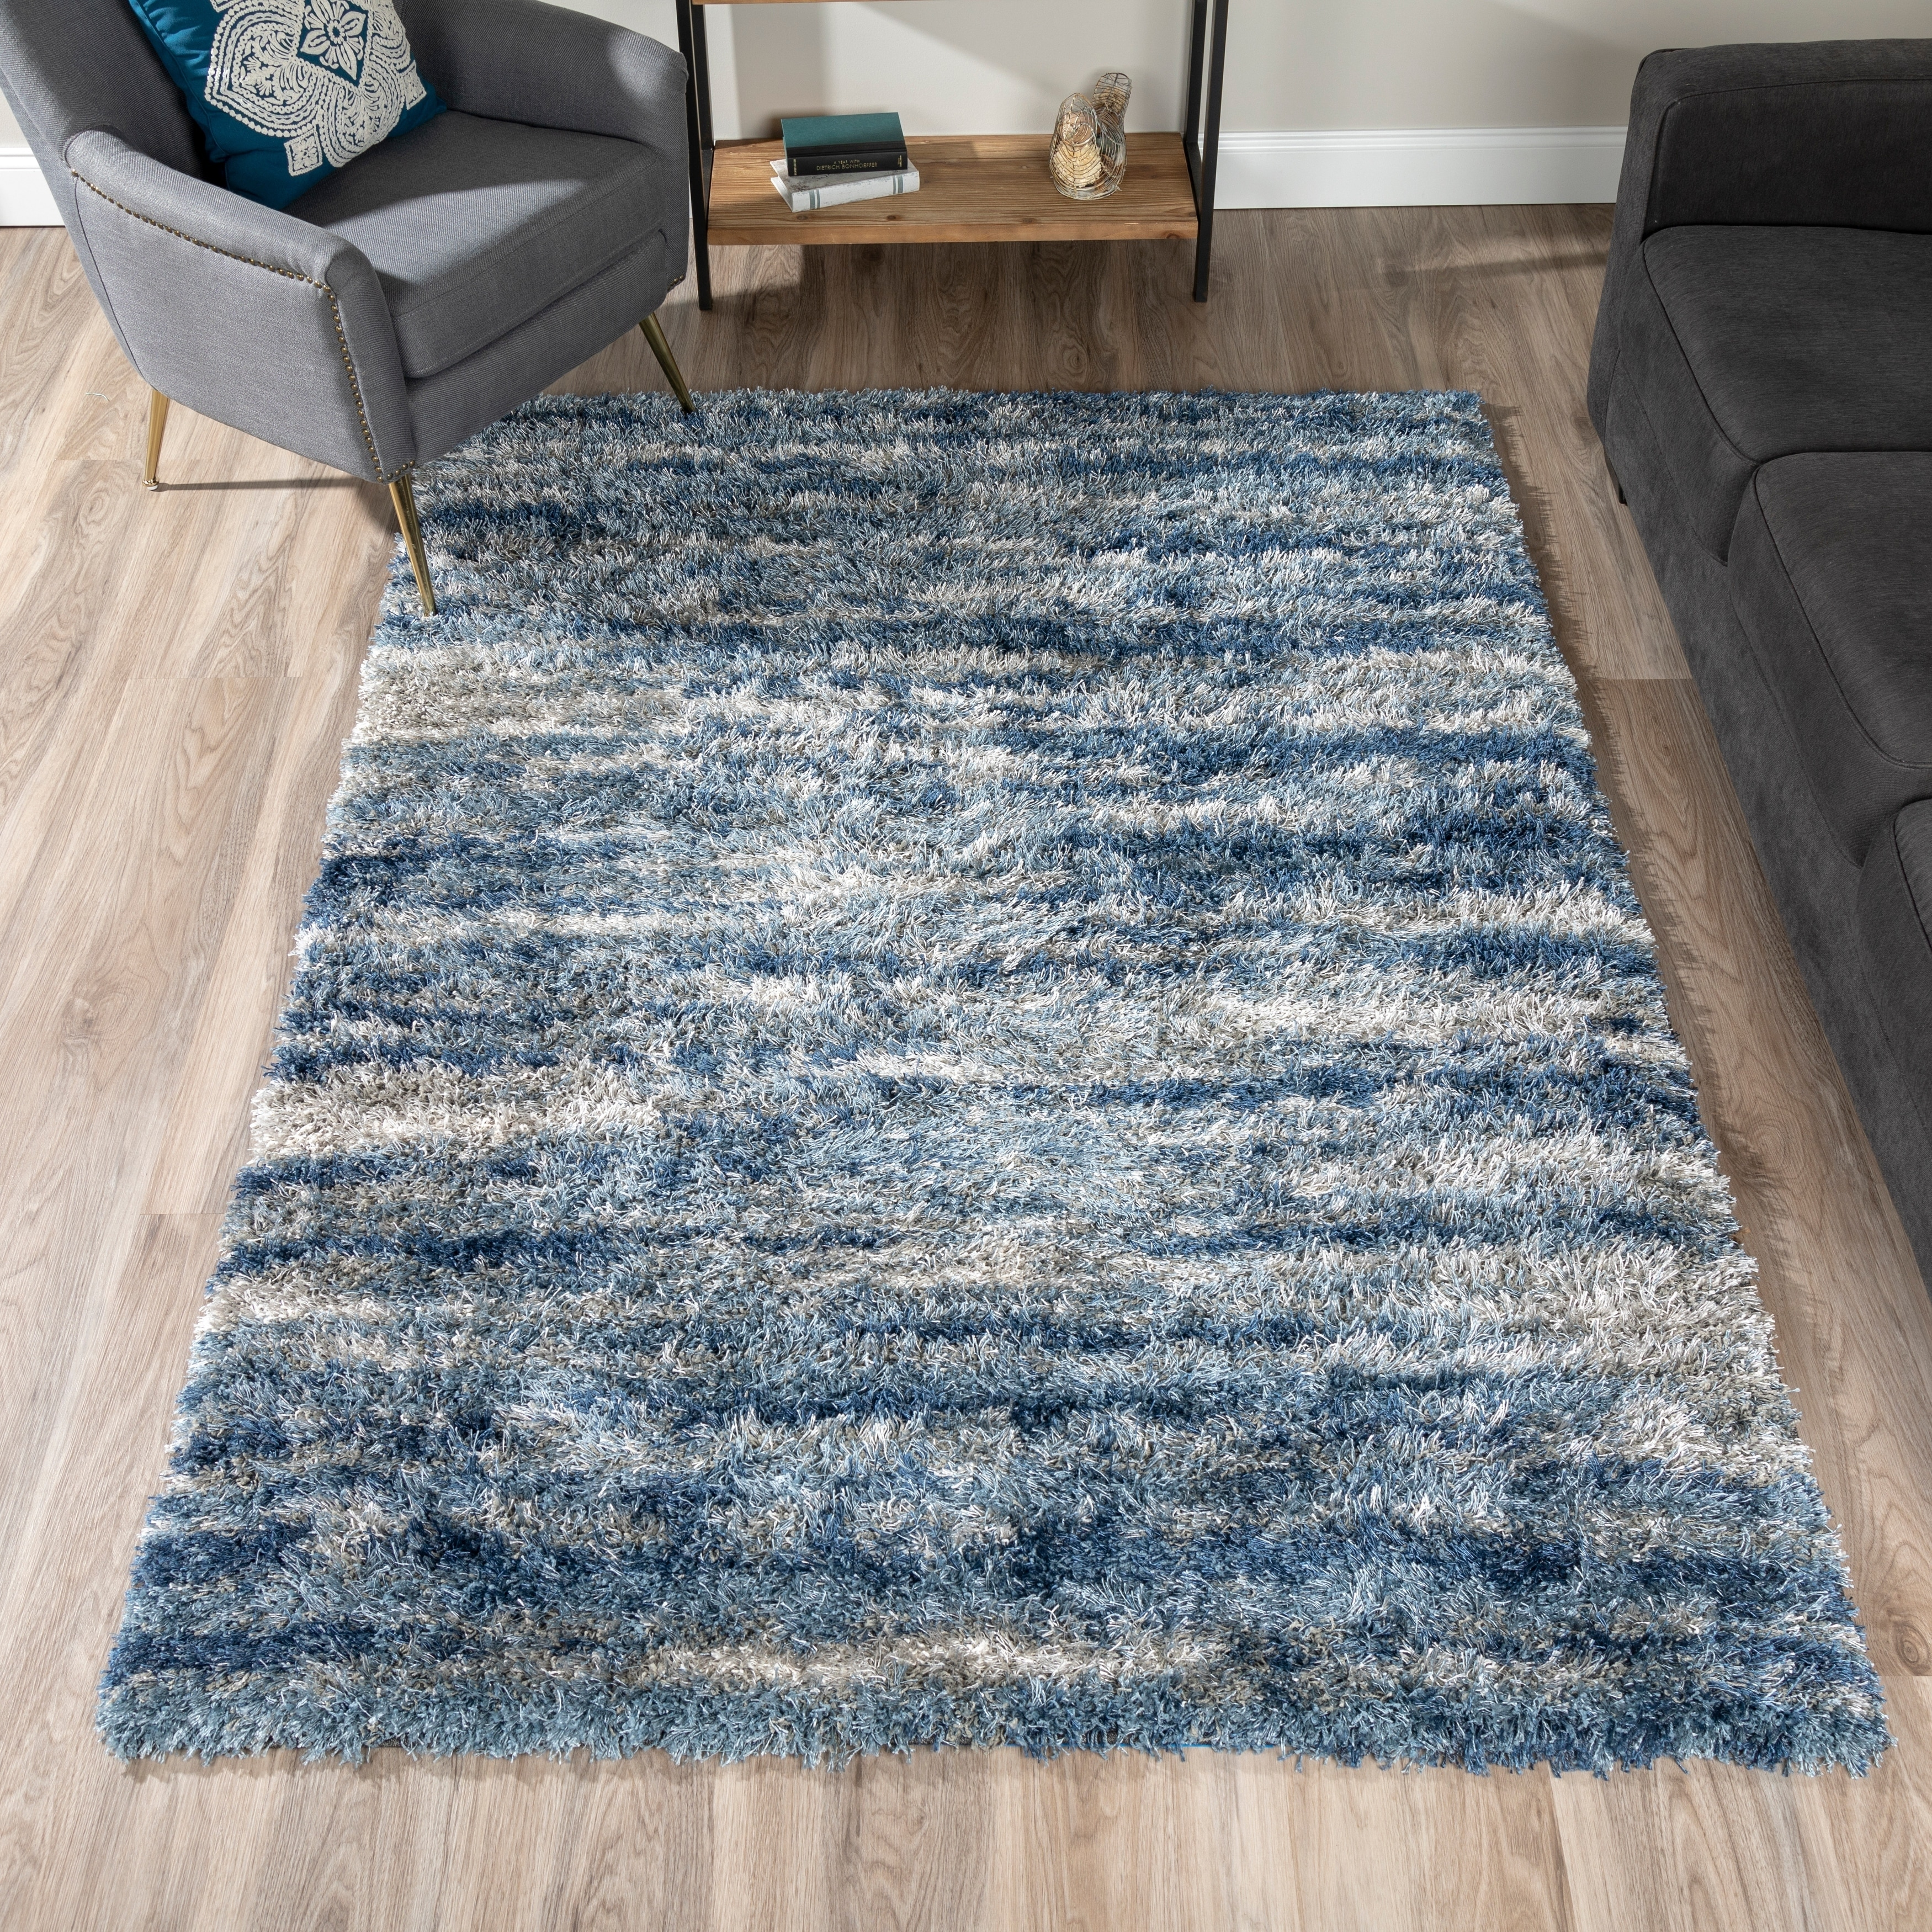 Shop For Addison Borealis Plush Abstract Shag Blue Gray Ivory Area Rug 3 3 X5 1 3 3 X5 1 Get Free Delivery On Everything At Overstock Your Online Home Decor Store Get 5 In Rewards With Club O 18594990